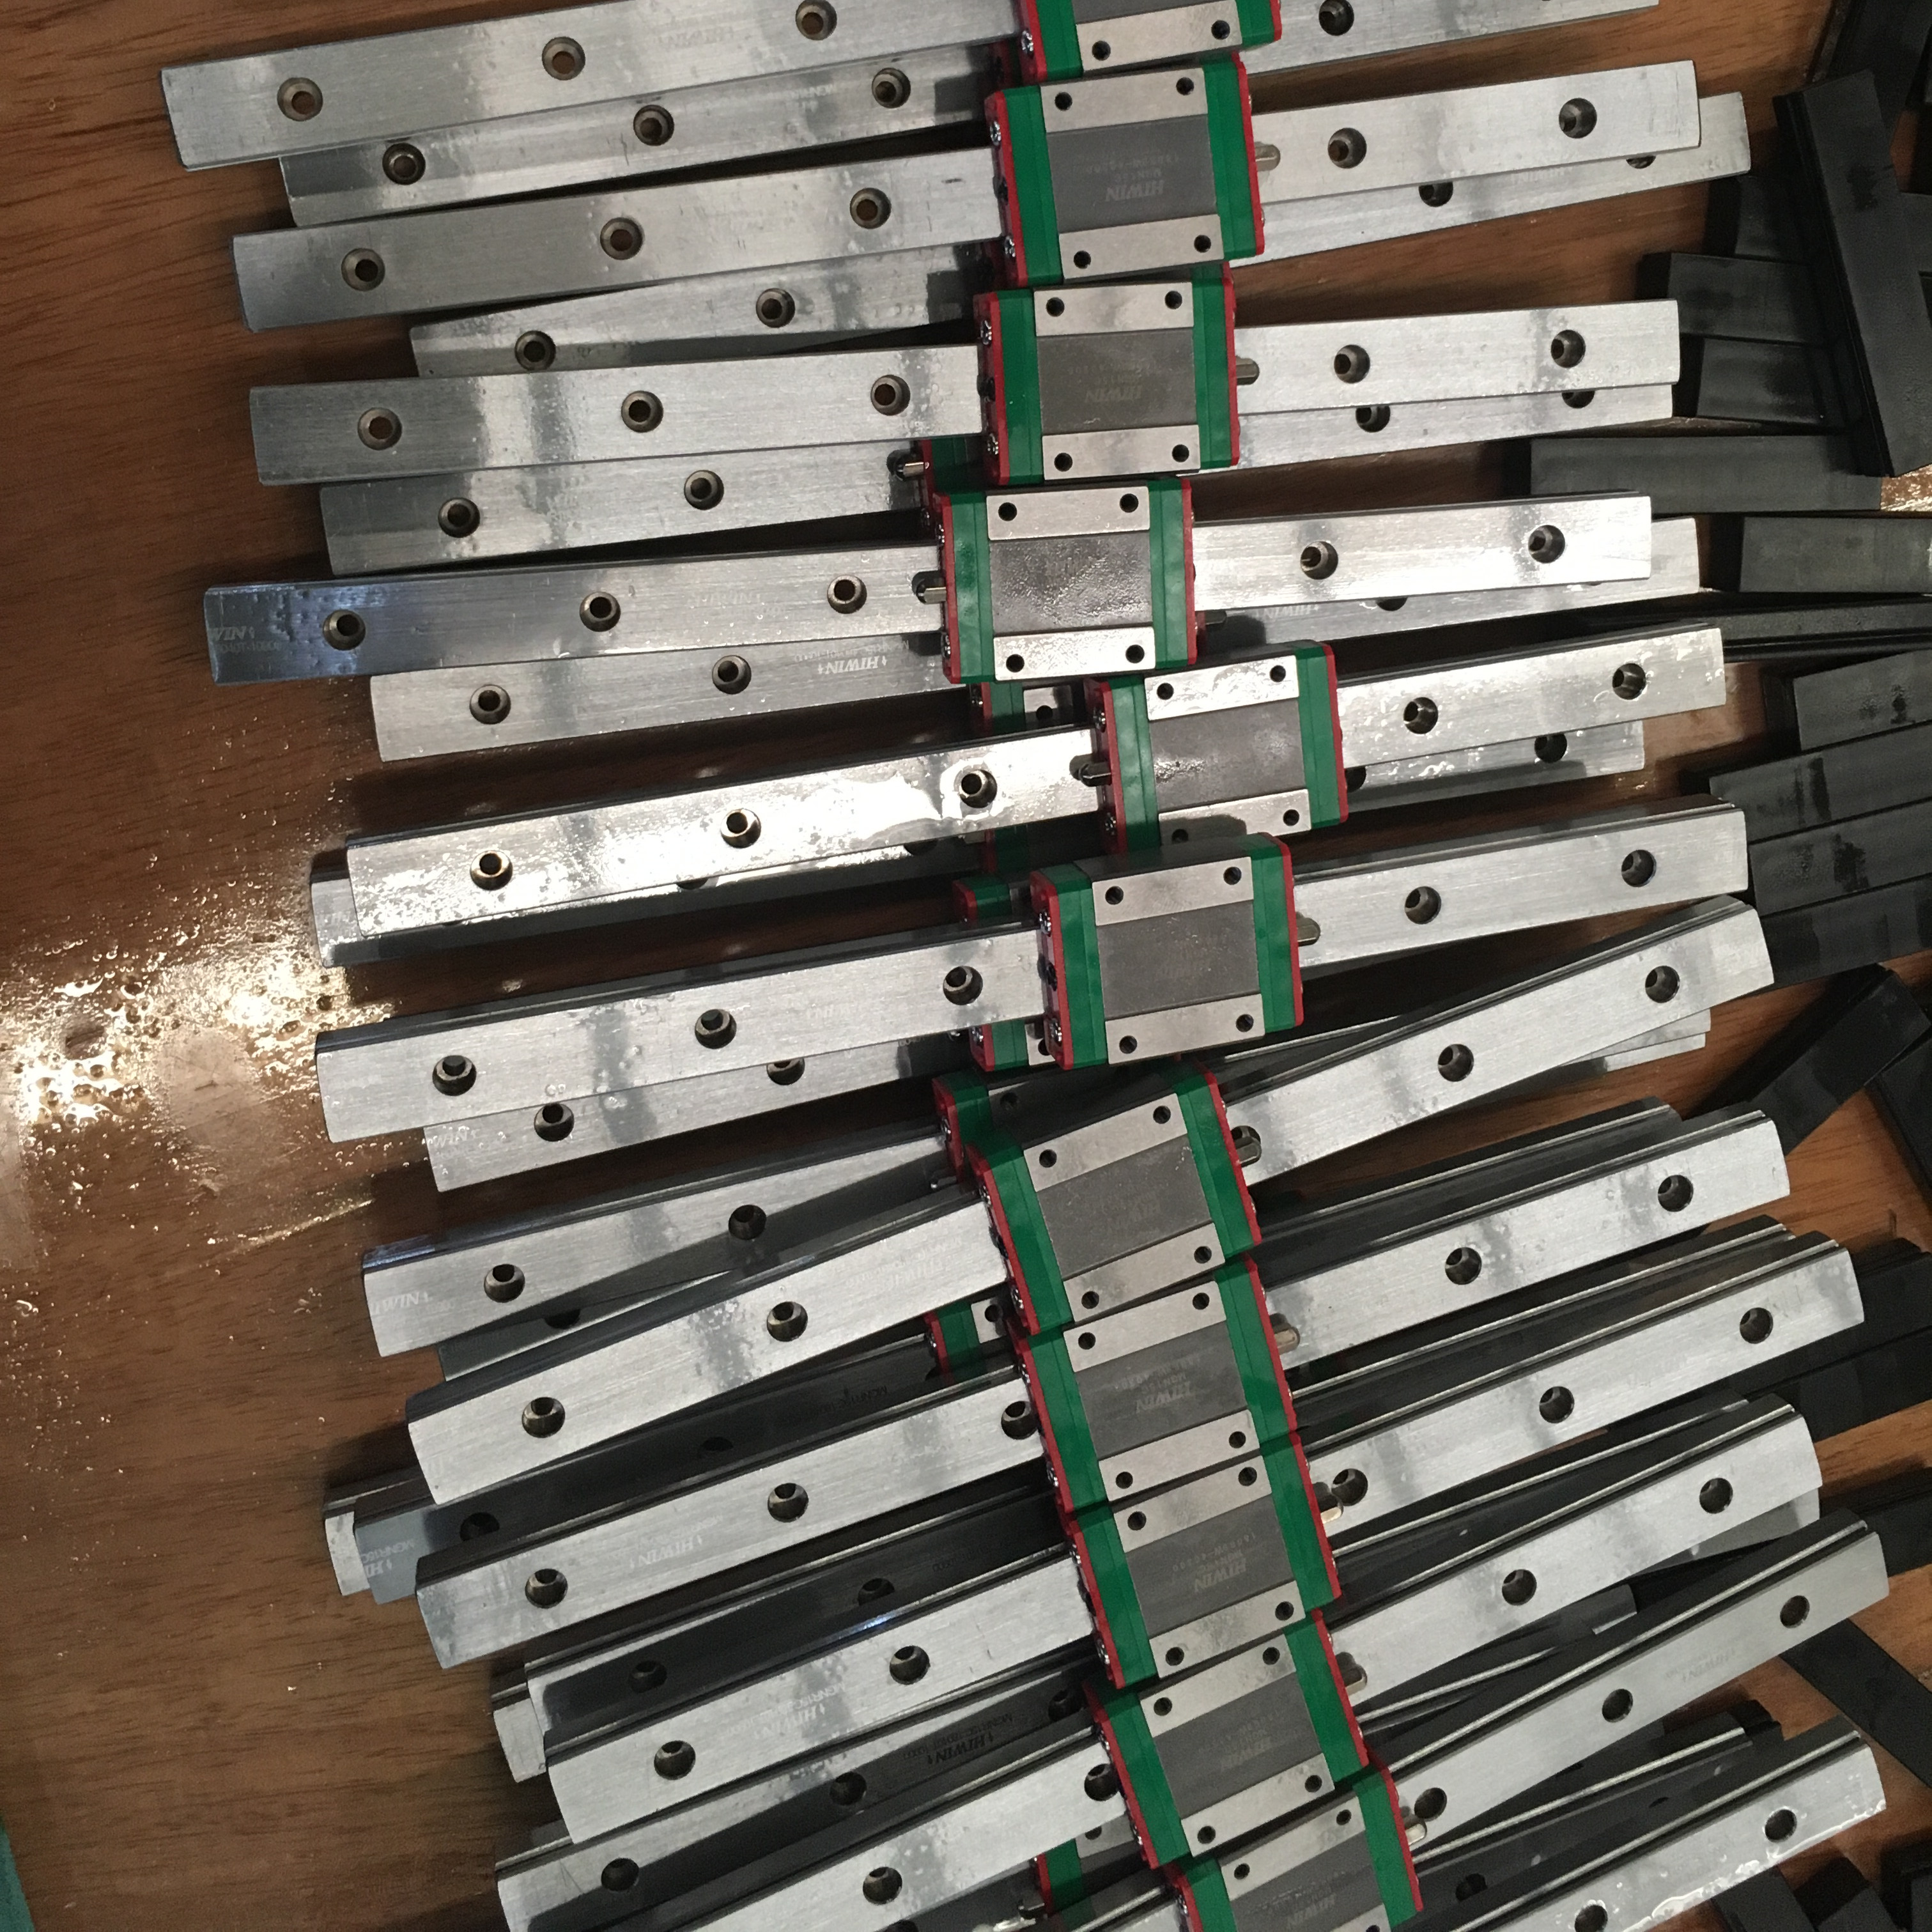 Image 4 - Original  Hiwin MGN12H carriages+400mm L MGNR12C linear rails 5pcs for BLV MGN Cube 3d printer Hiwin MGN12H rail-in 3D Printer Parts & Accessories from Computer & Office